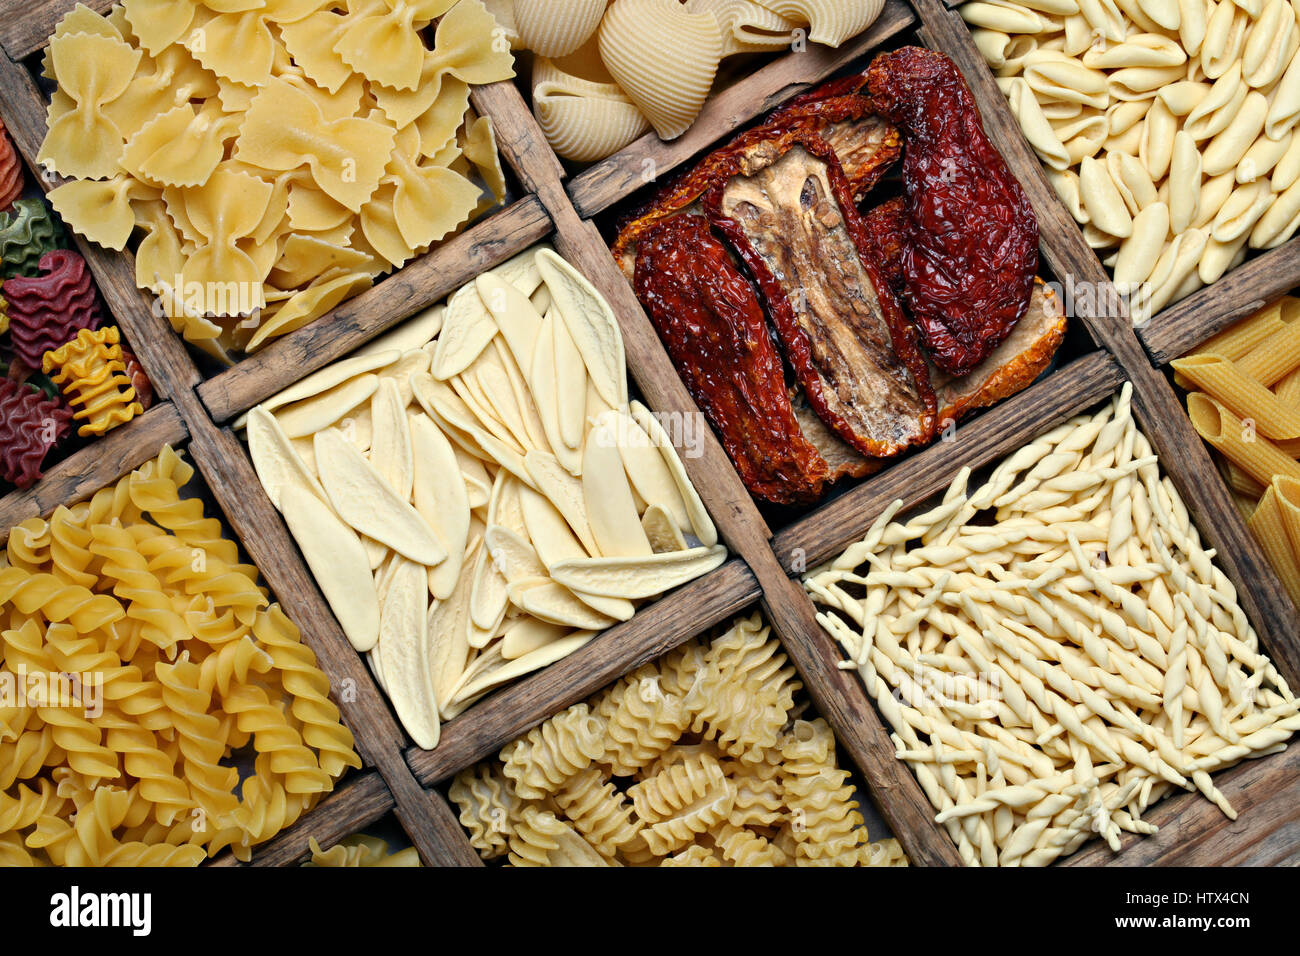 Background image of italian pasta. Various pasta in a wooden antique box - Stock Image